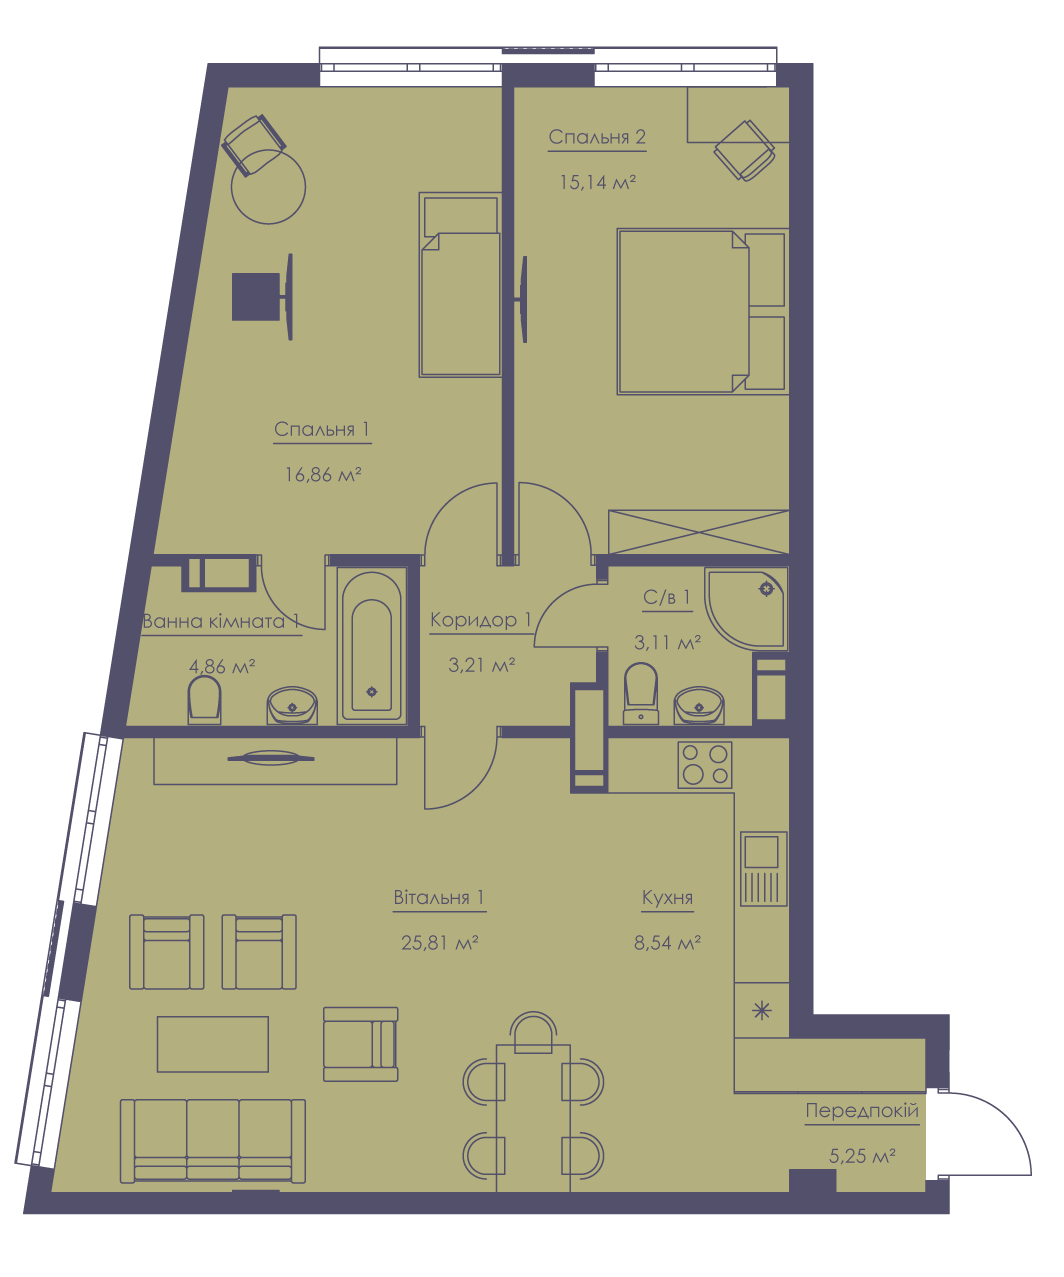 Apartment layout KV_74_3n_1_1_7-1